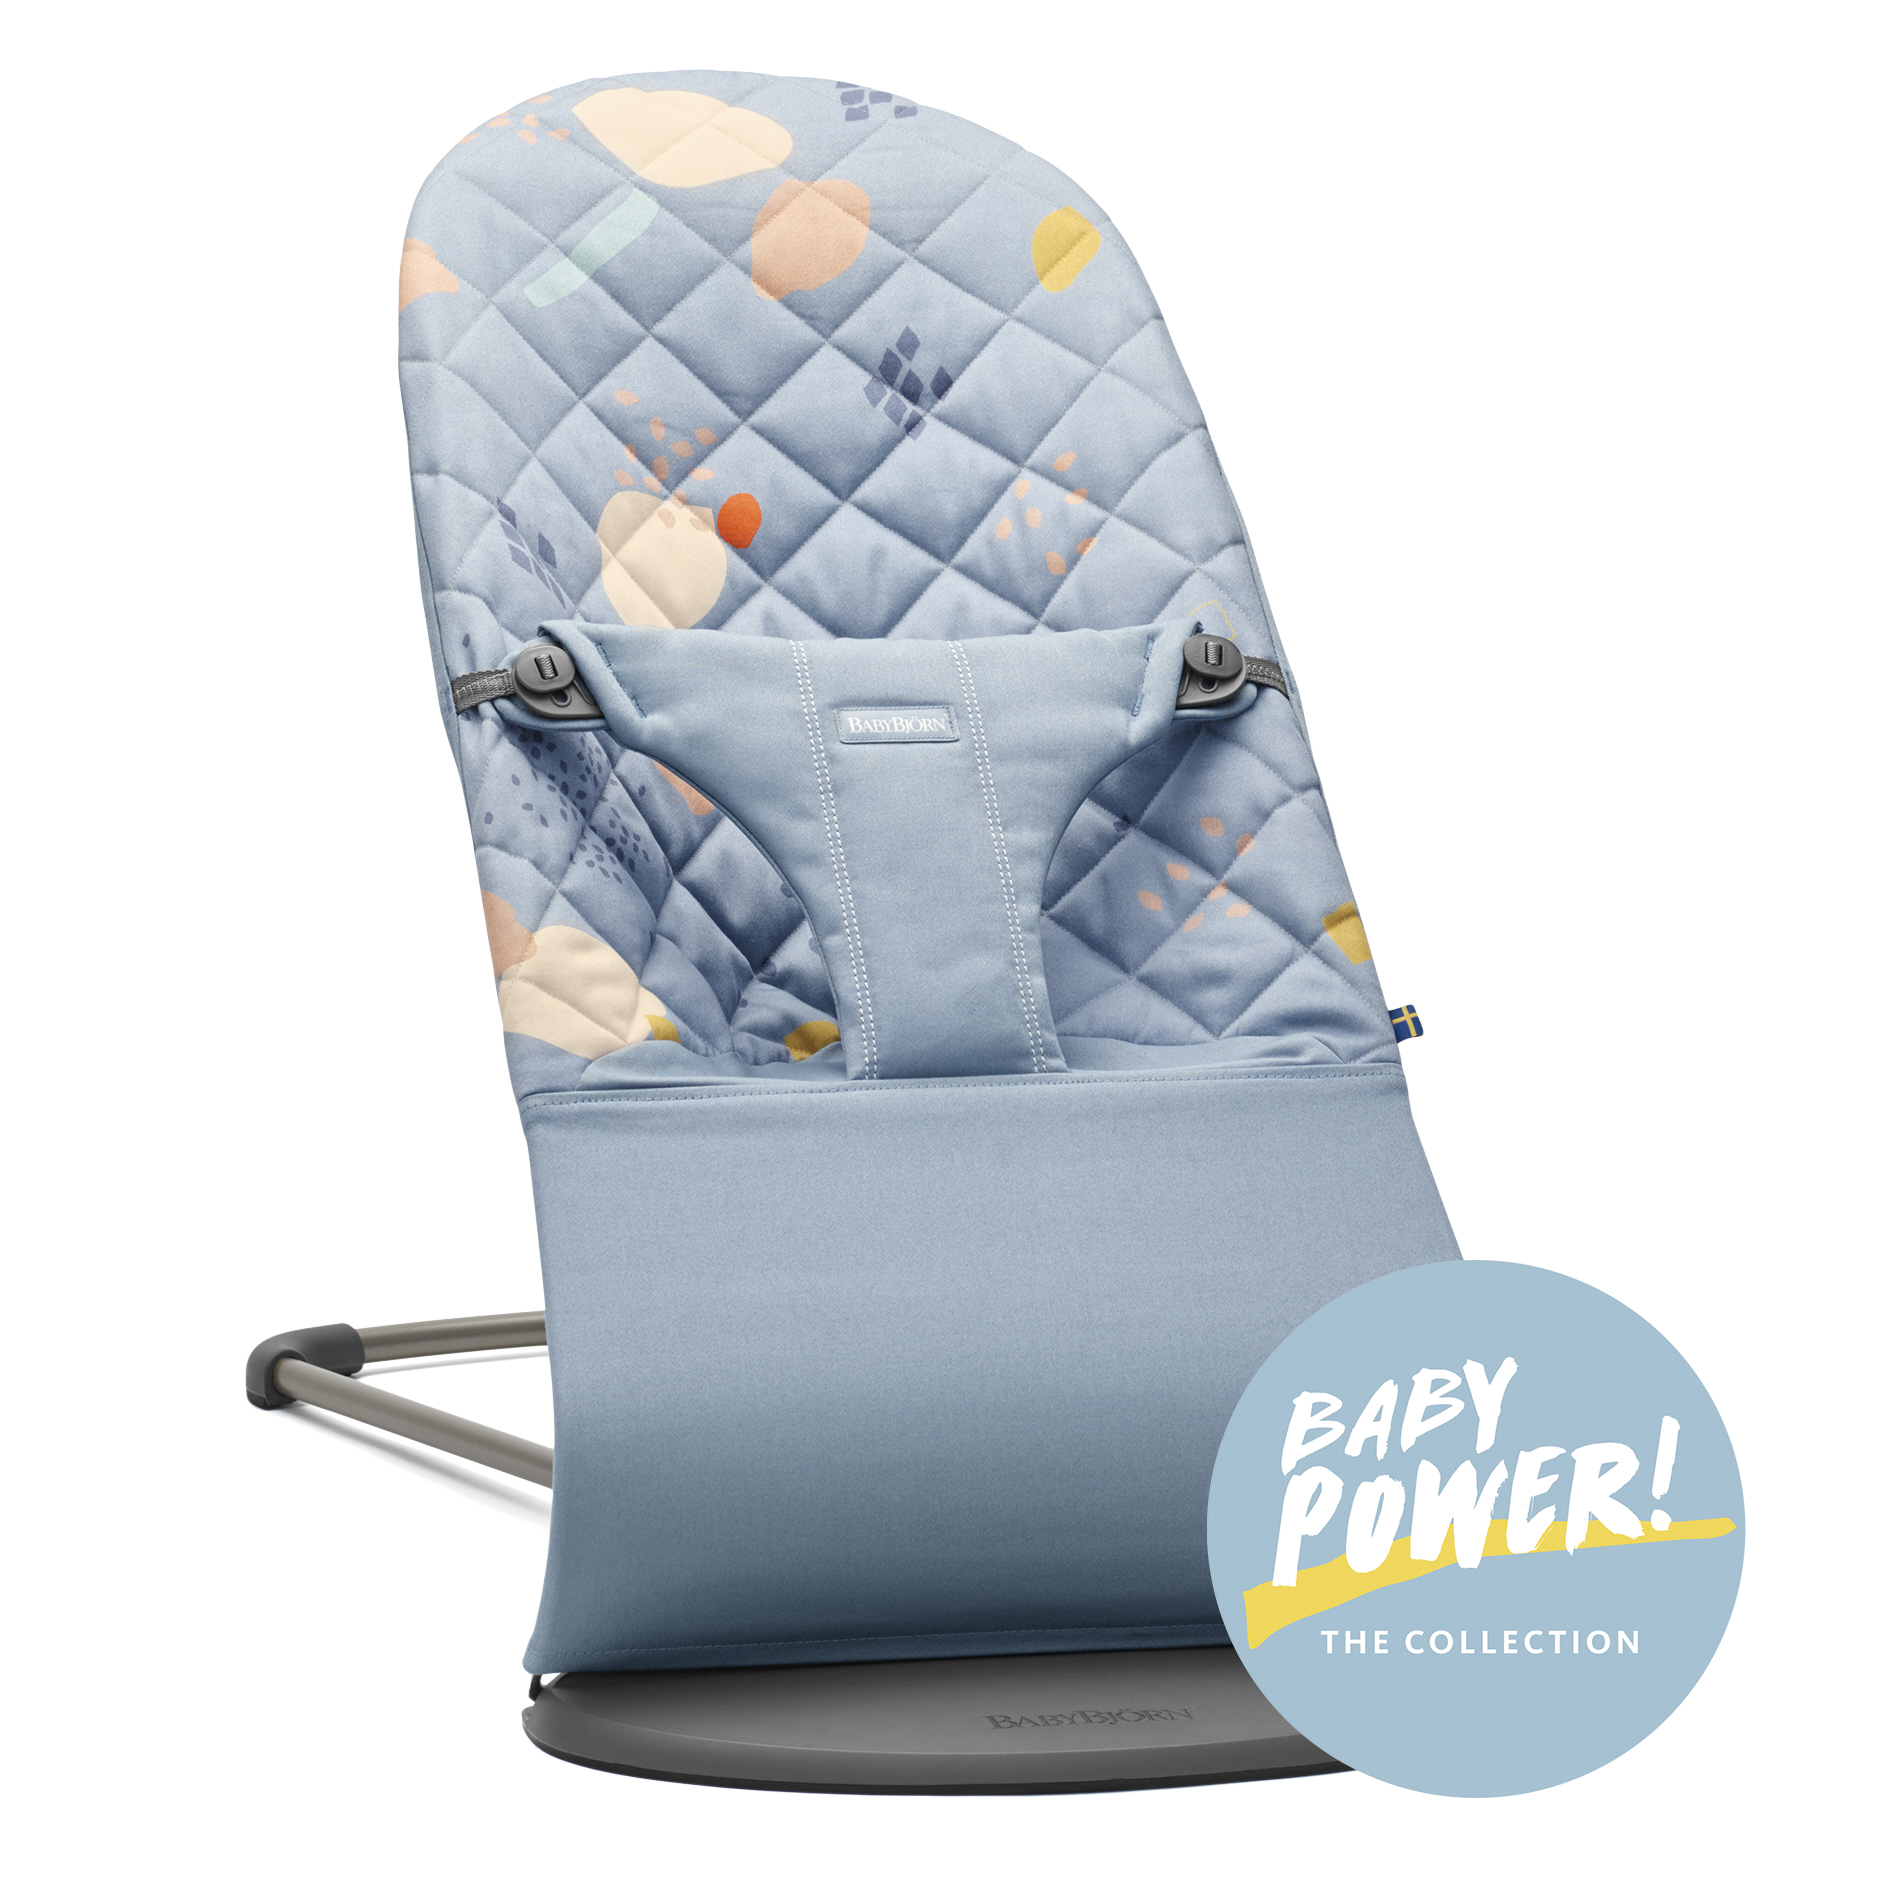 Lehátko Babybjorn Bouncer Bliss Confetti/Blue cotton, kolekce Baby Power